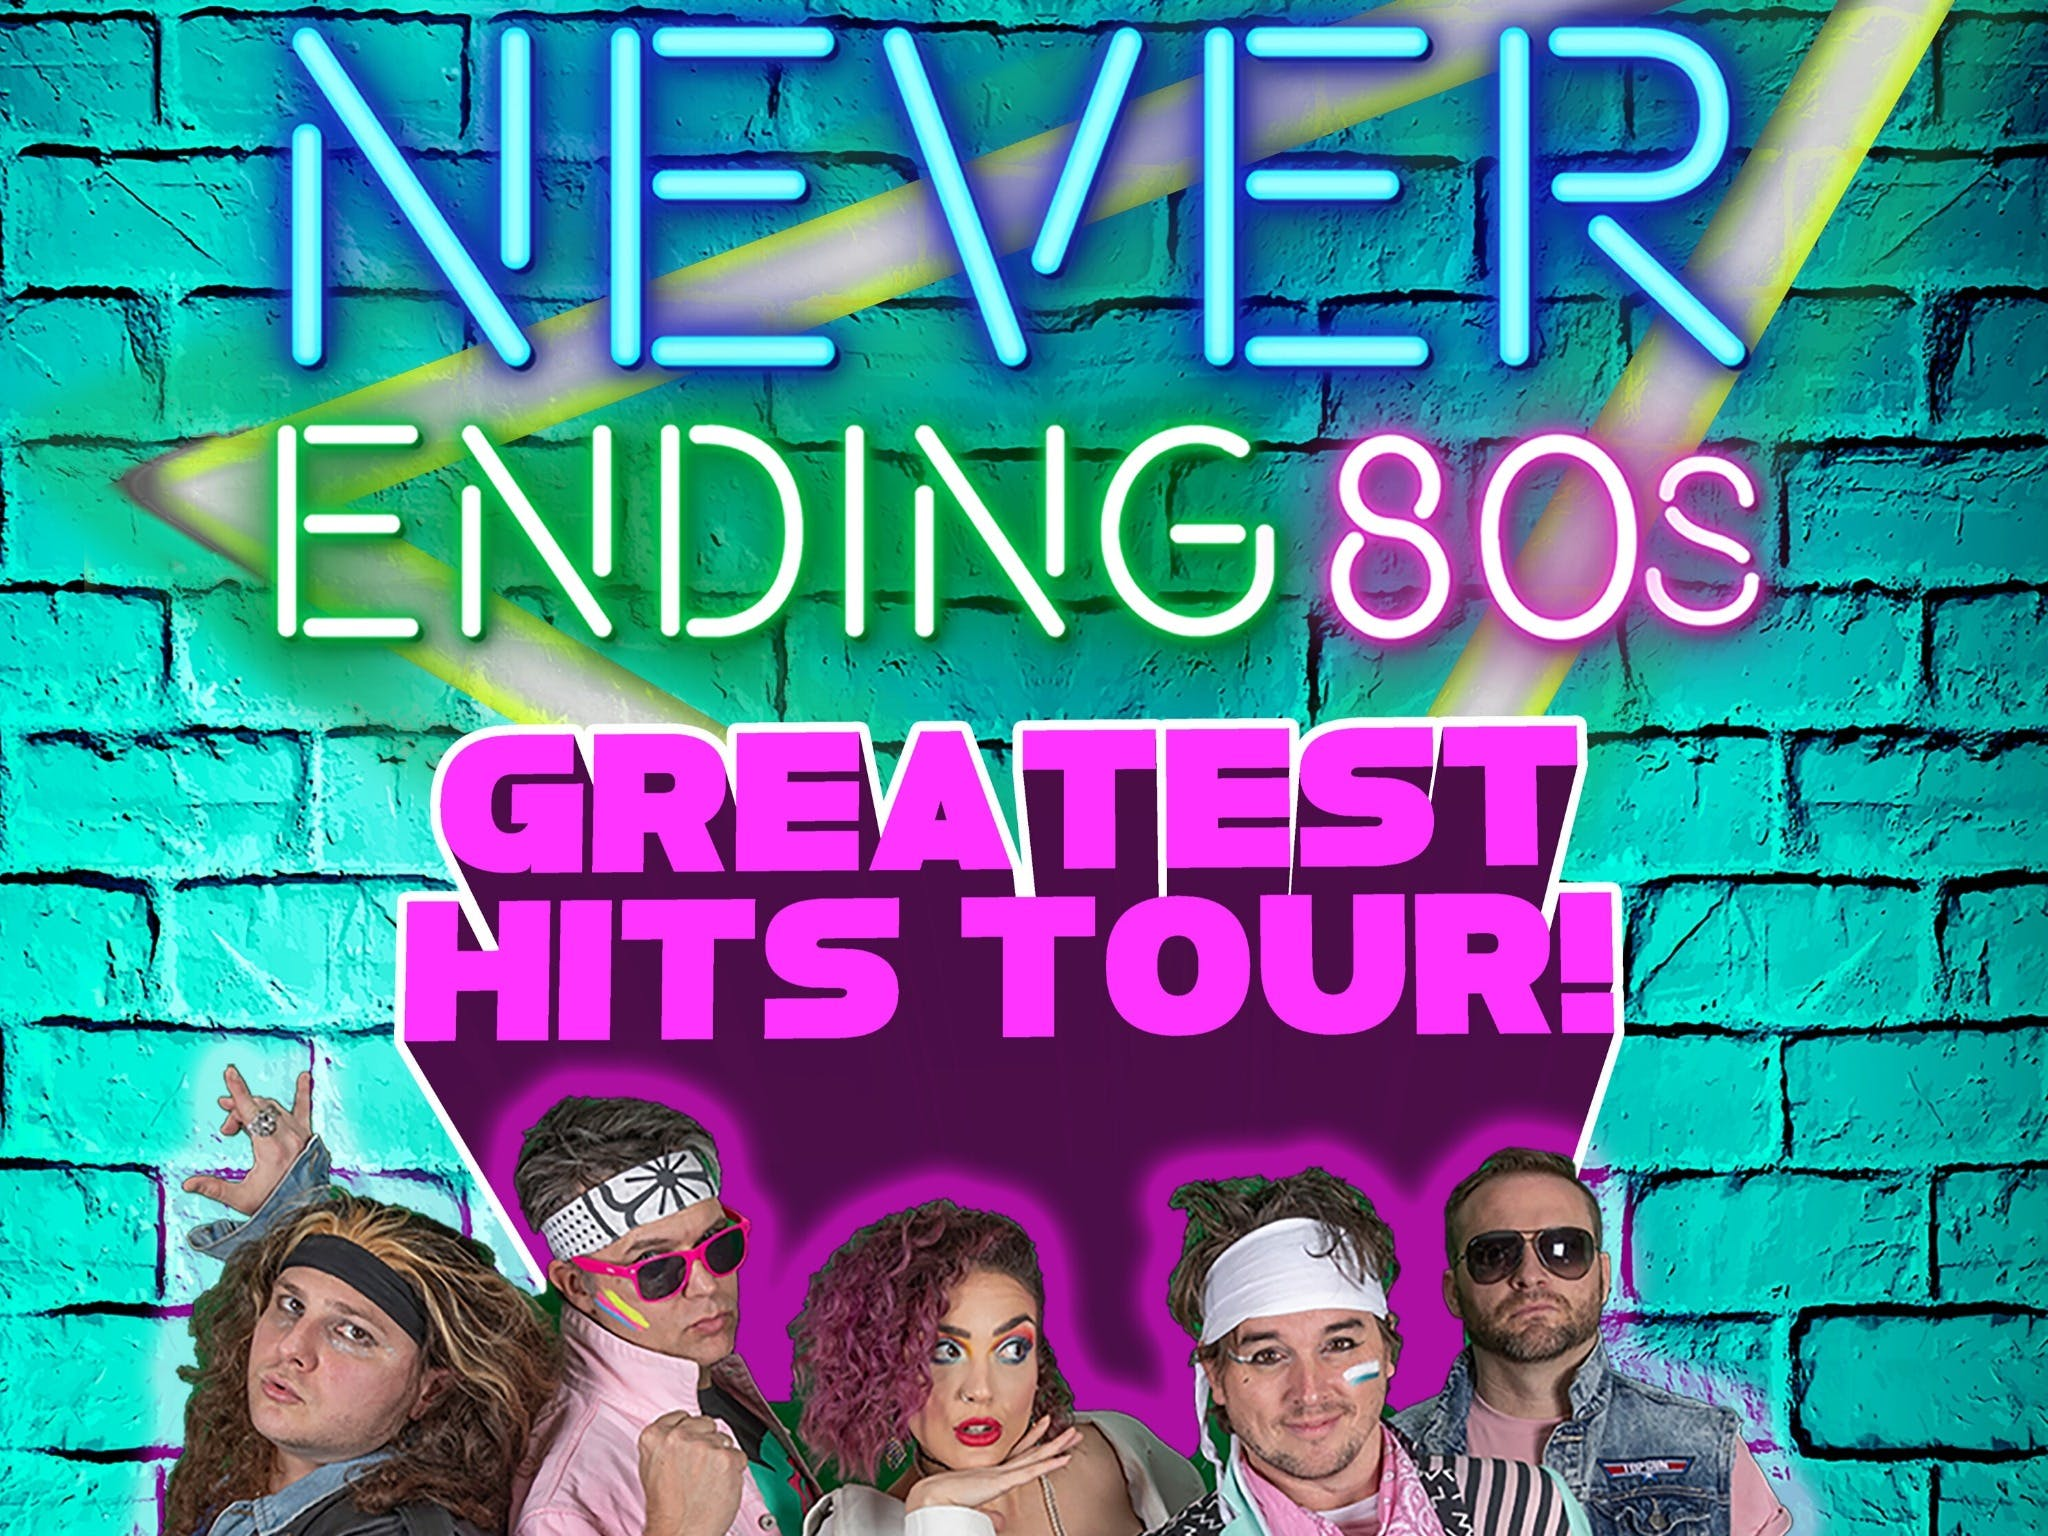 Never Ending 80s - The Greatest Hits Tour - Tourism Brisbane